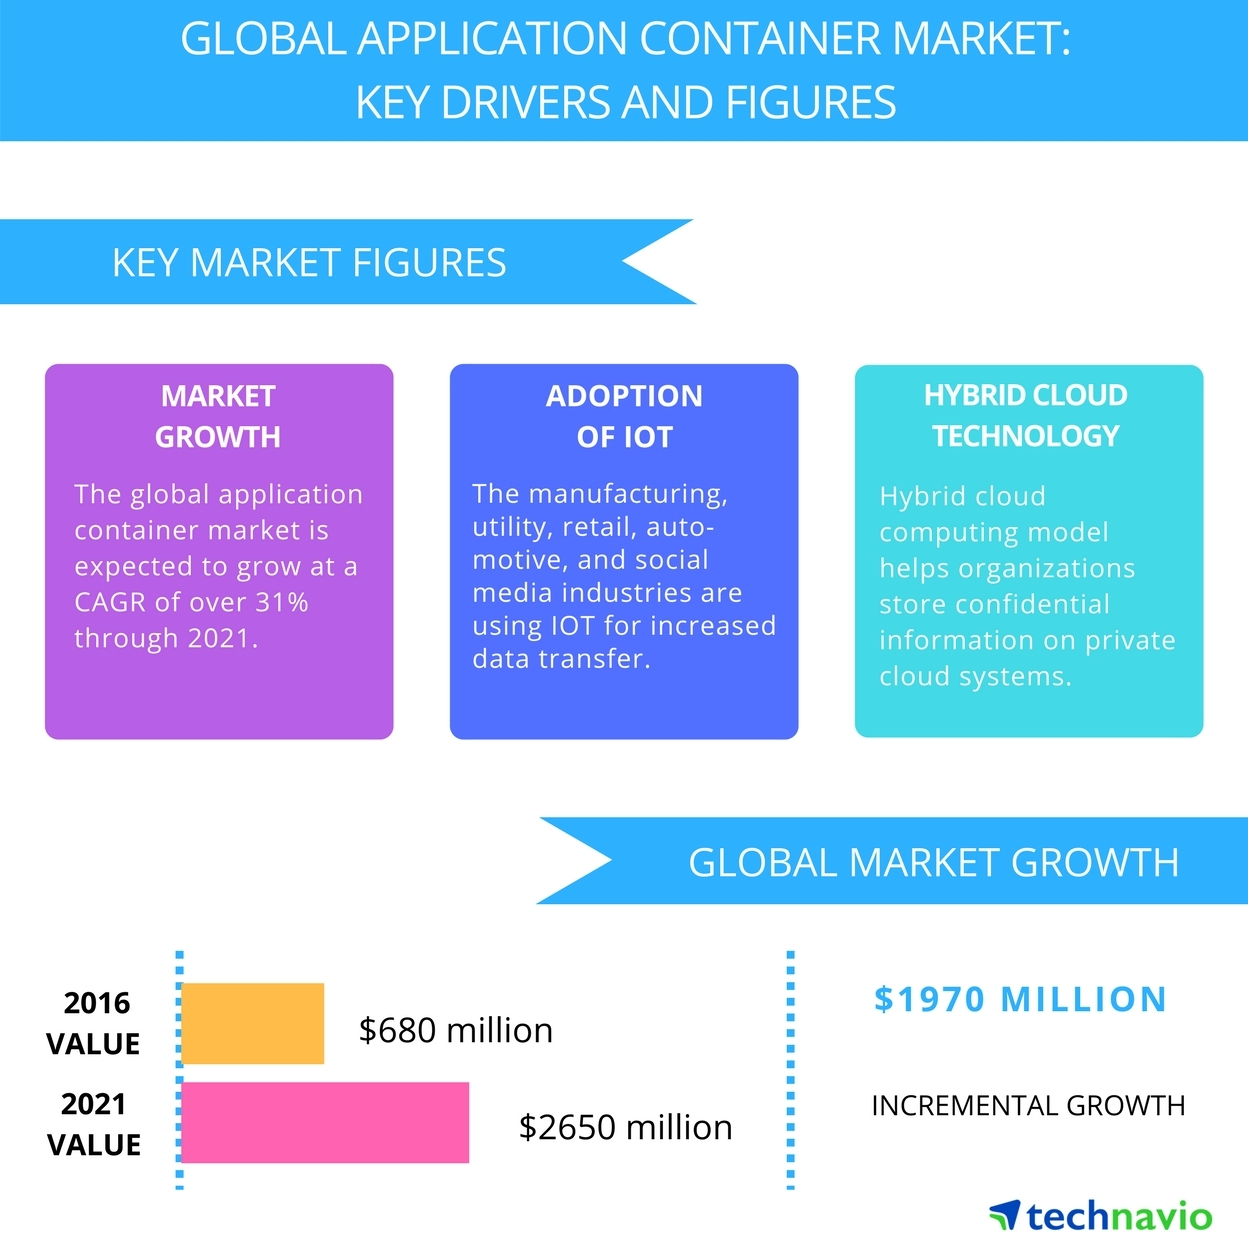 Technavio has published a new report on the global application container market from 2017-2021. (Graphic: Business Wire)